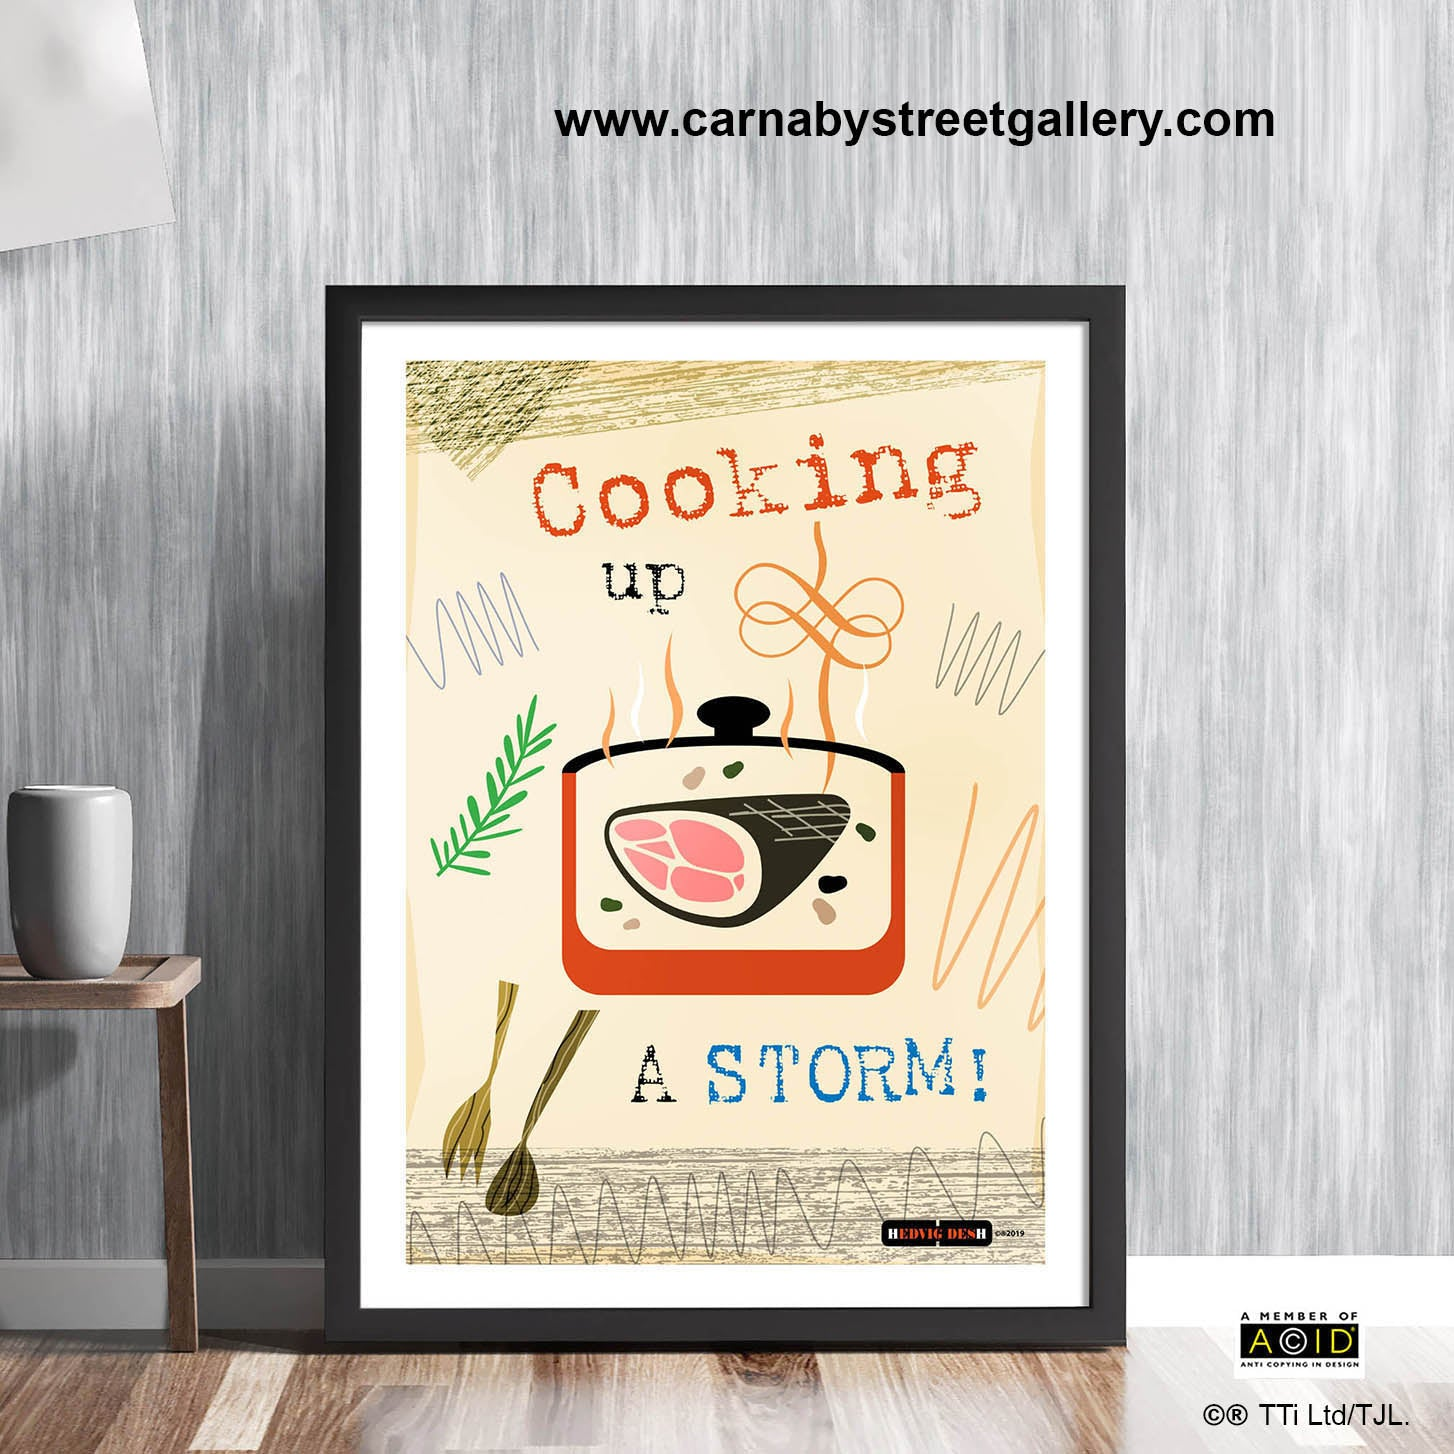 'COOKING UP A STORM!' retro mid century kitchen cook's meme Scandinavian cookery cookbook food wall art print illustration by Hedvig Desh collection - 'Unframed'